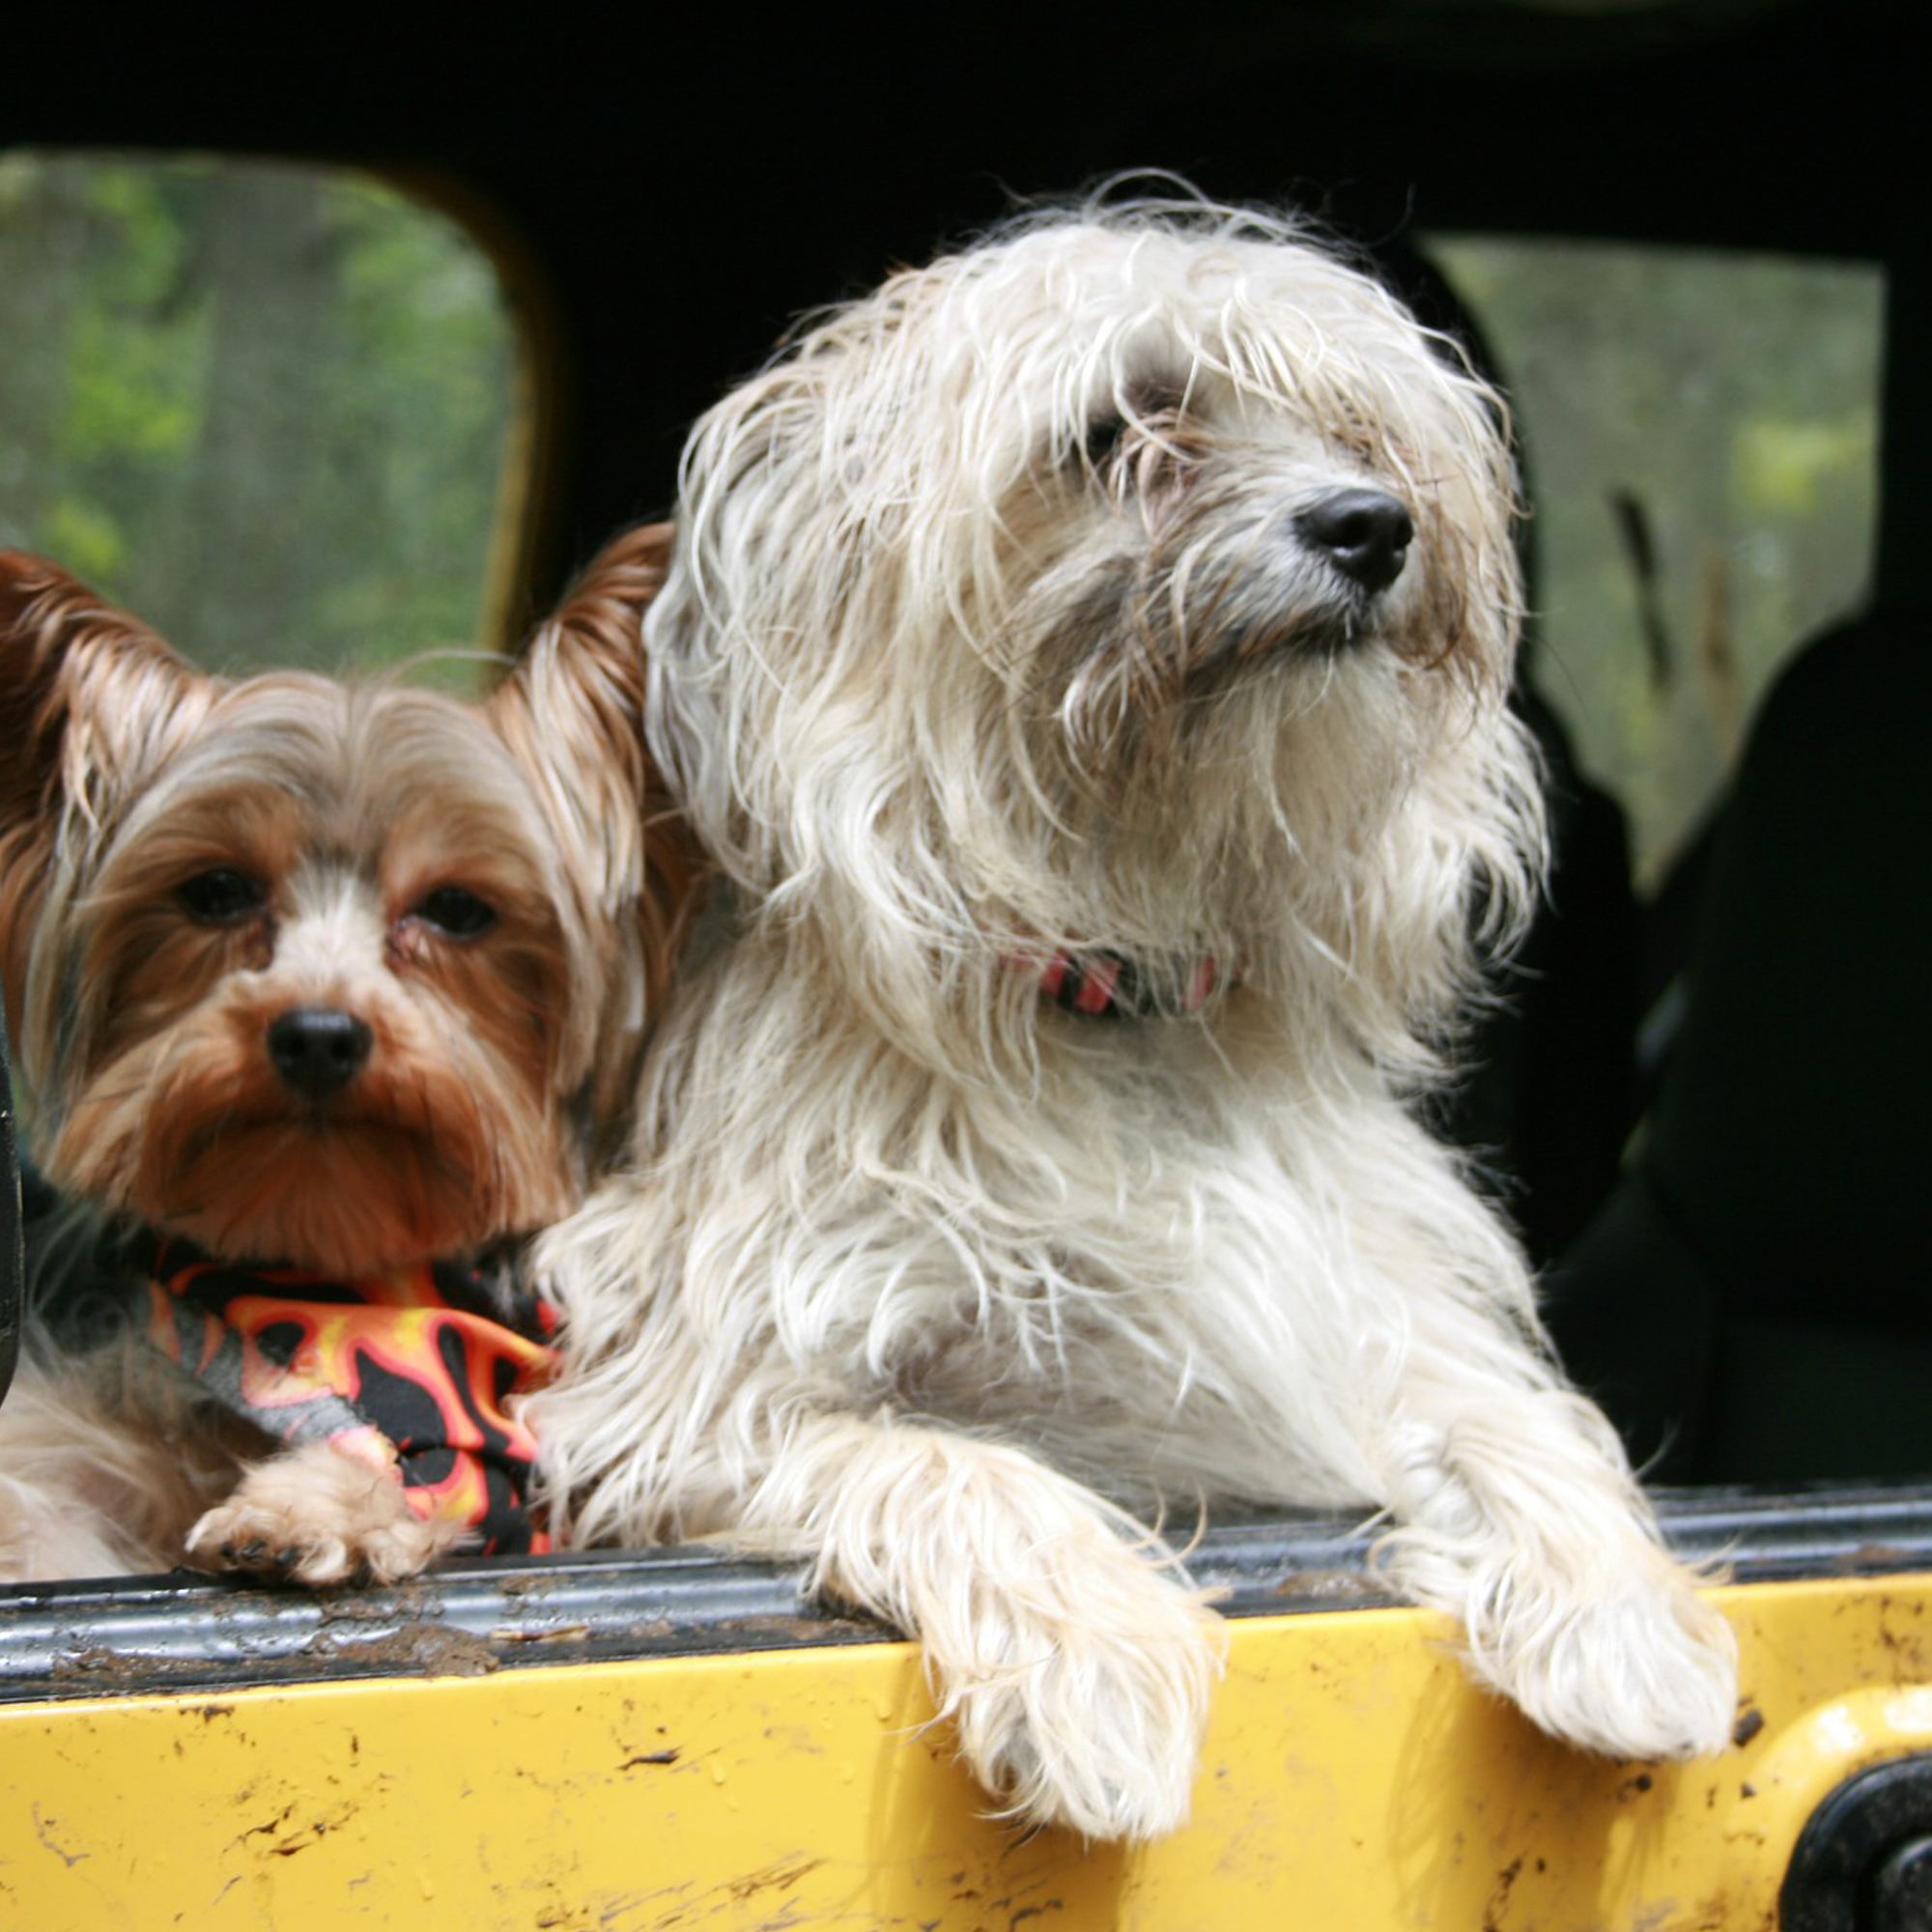 Carpool dog travel dog friendly abroad